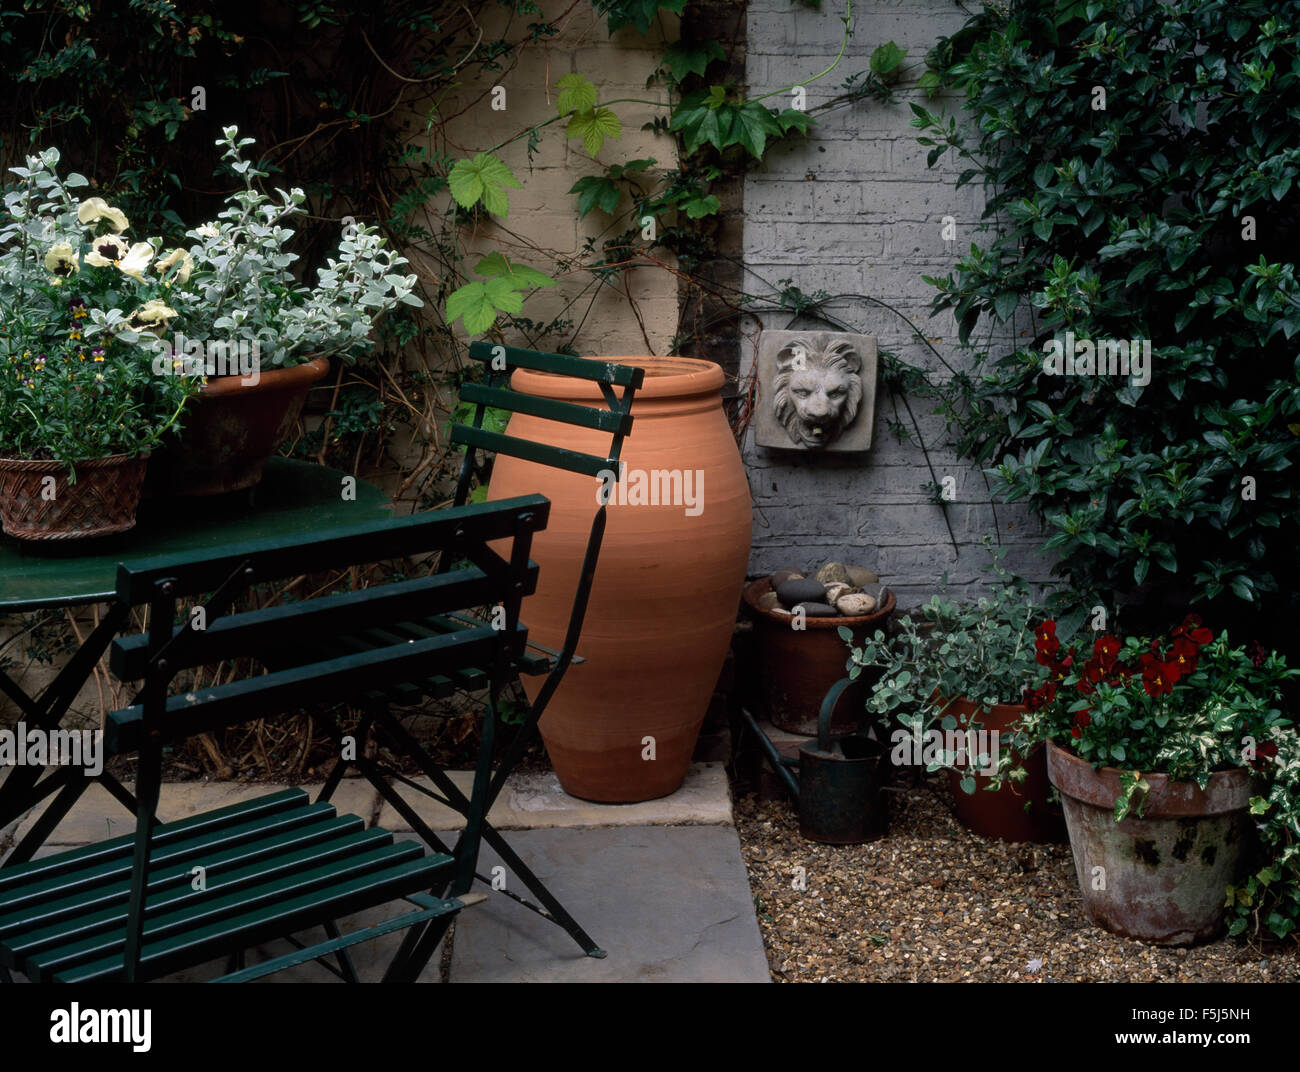 Picture of: Foliage Plants In Pots On Small Table With Slatted Chairs On A Town Stock Photo Alamy